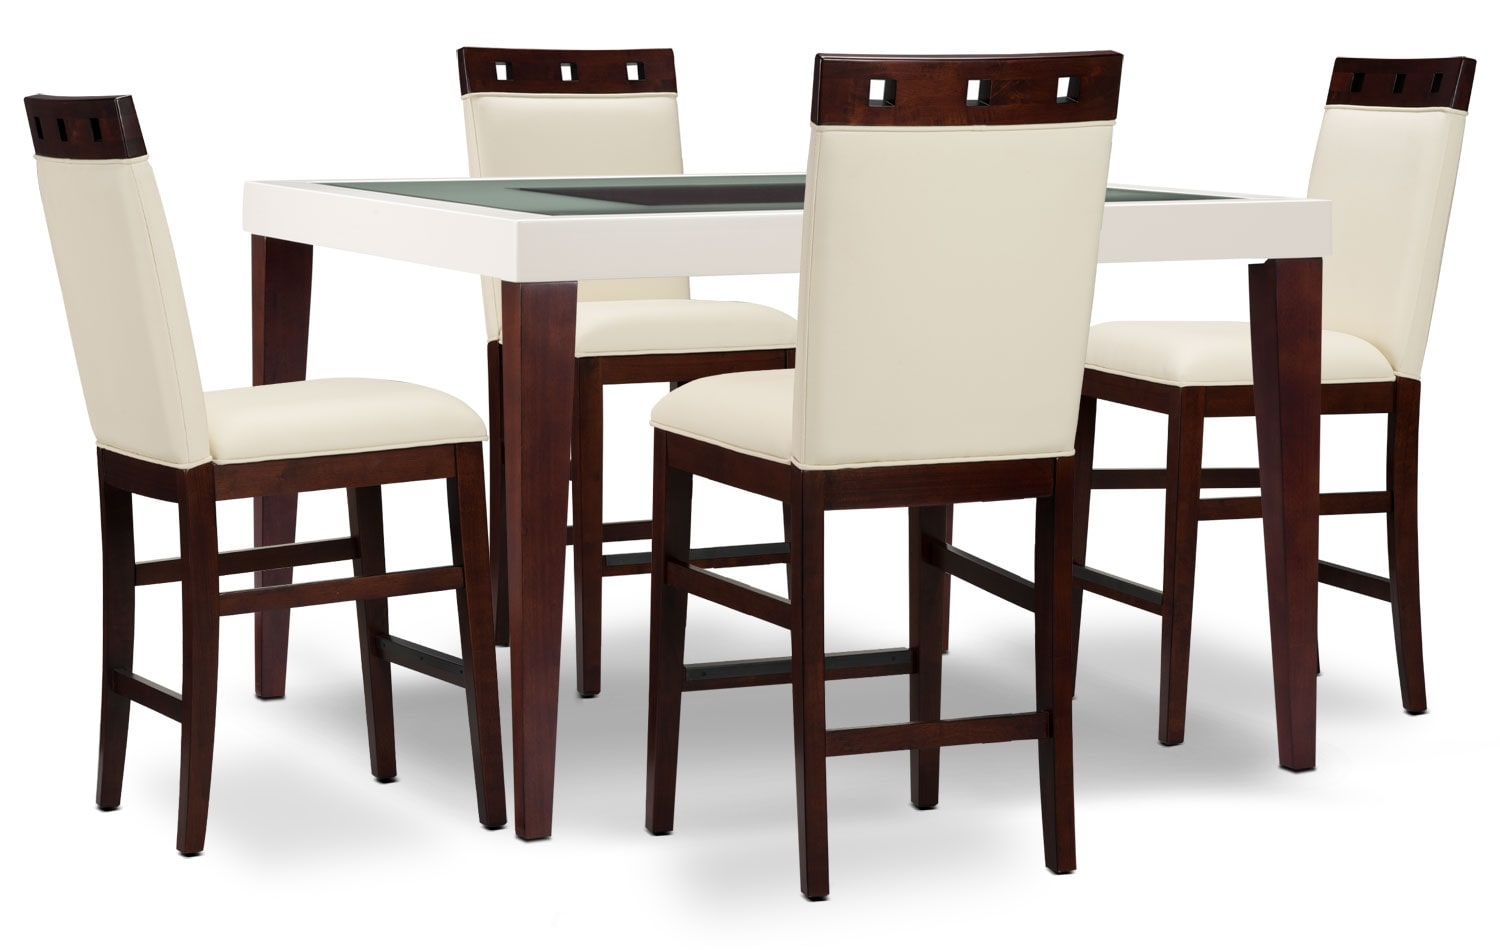 Dining Room Furniture - Zeno 5-Piece Counter-Height Dining Package with Wood Top Chair